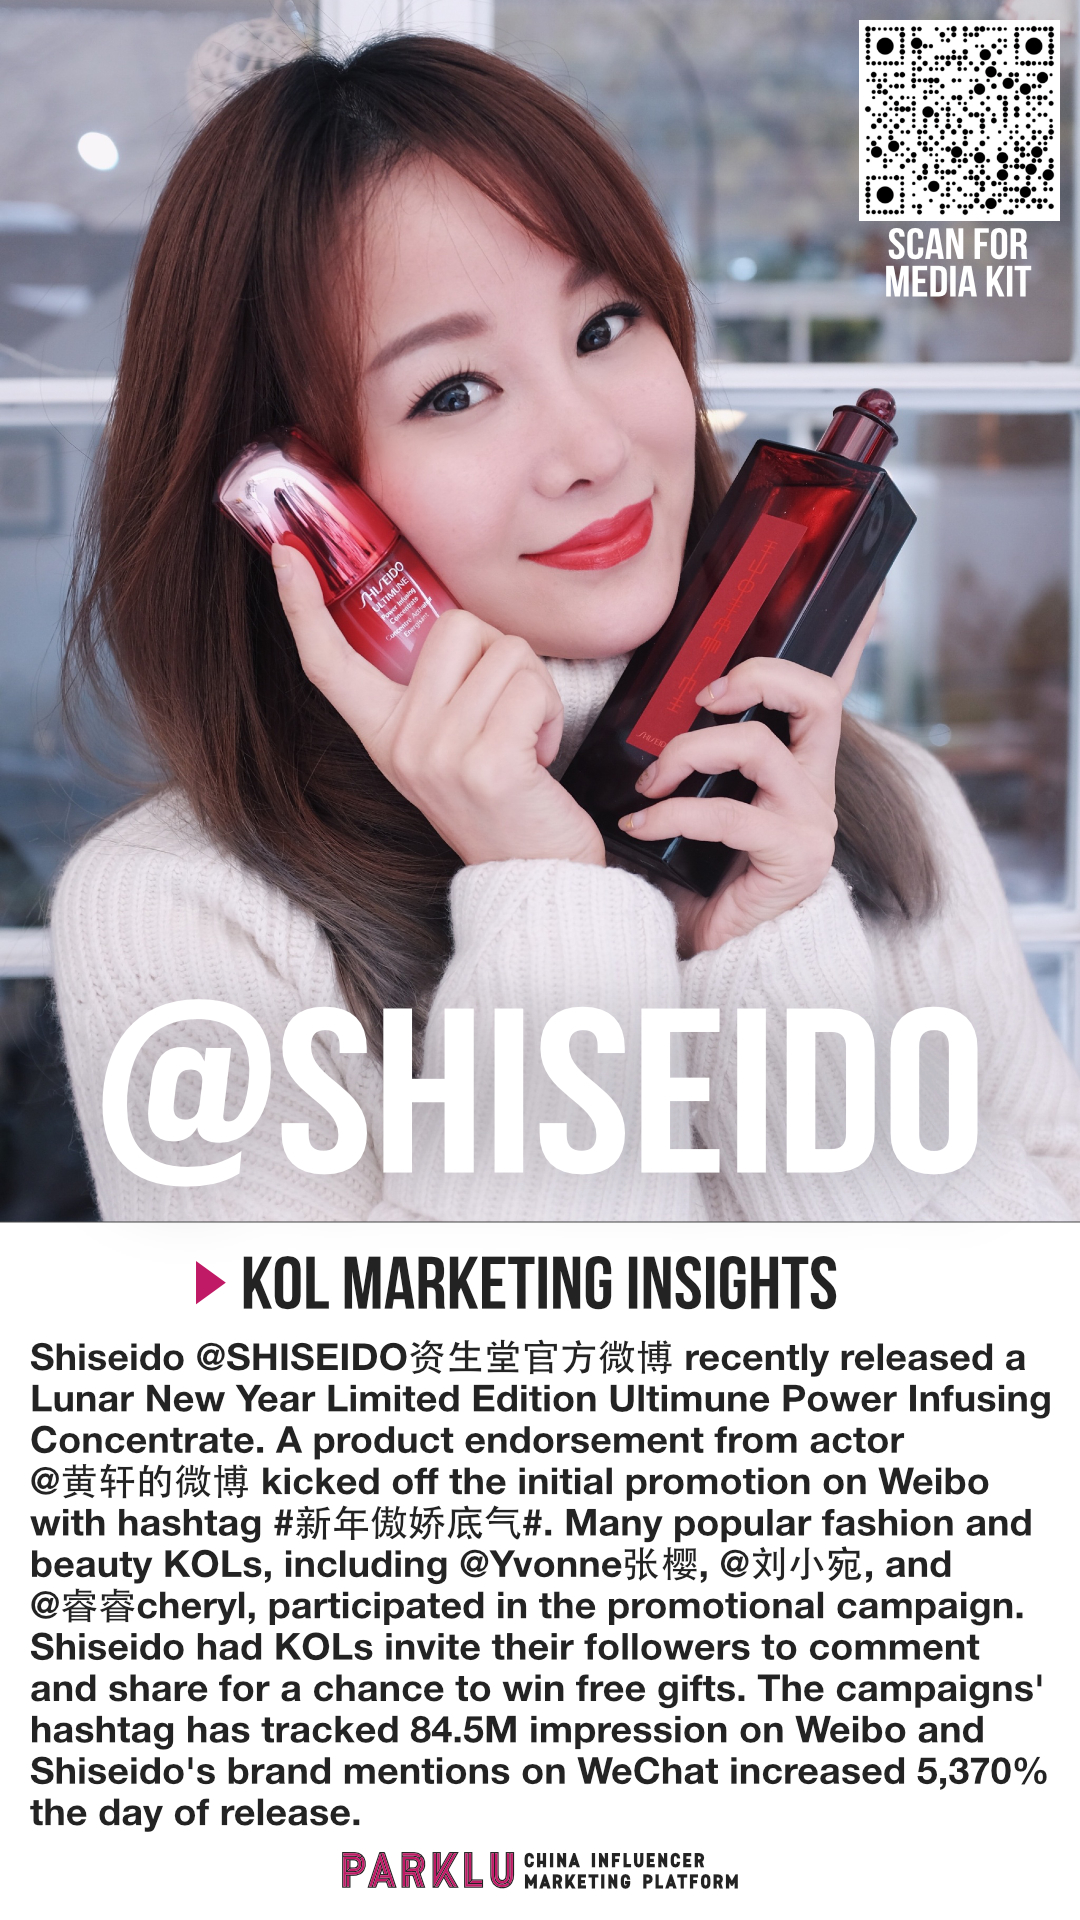 Shiseido China Actor Product Endorsement and KOL Promotions